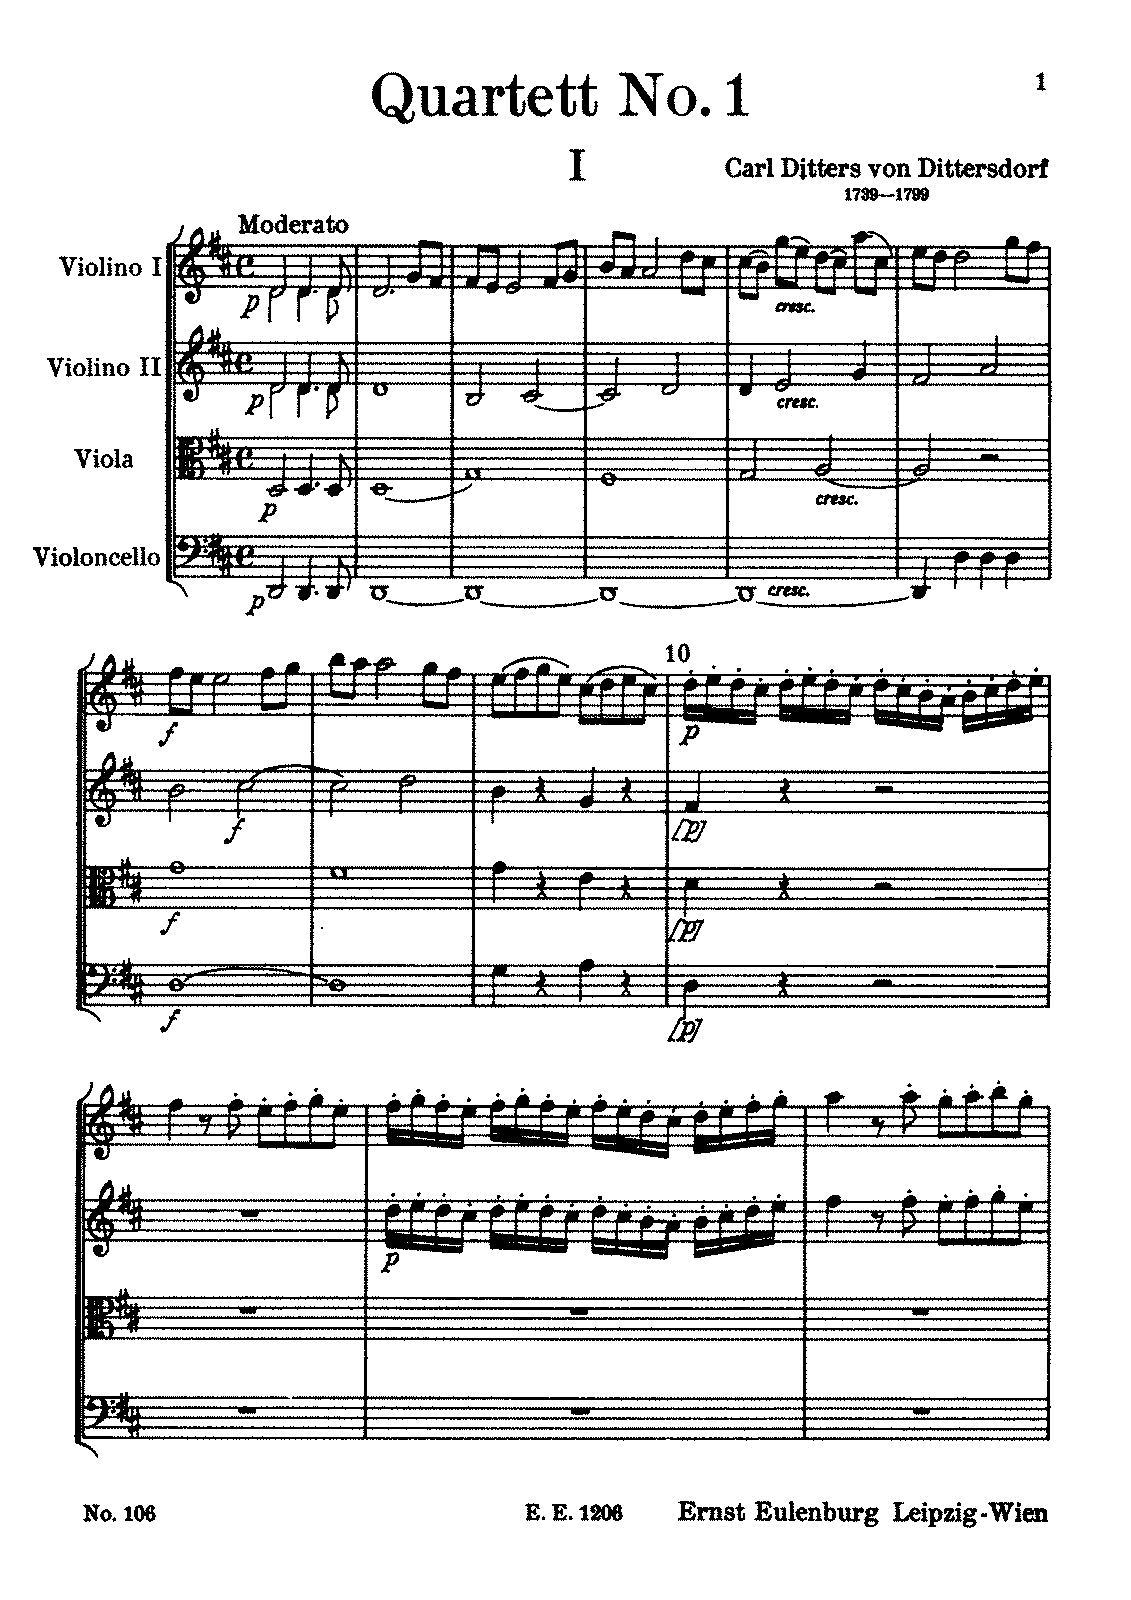 Dittersdorf String Quartet No.1 in D.pdf